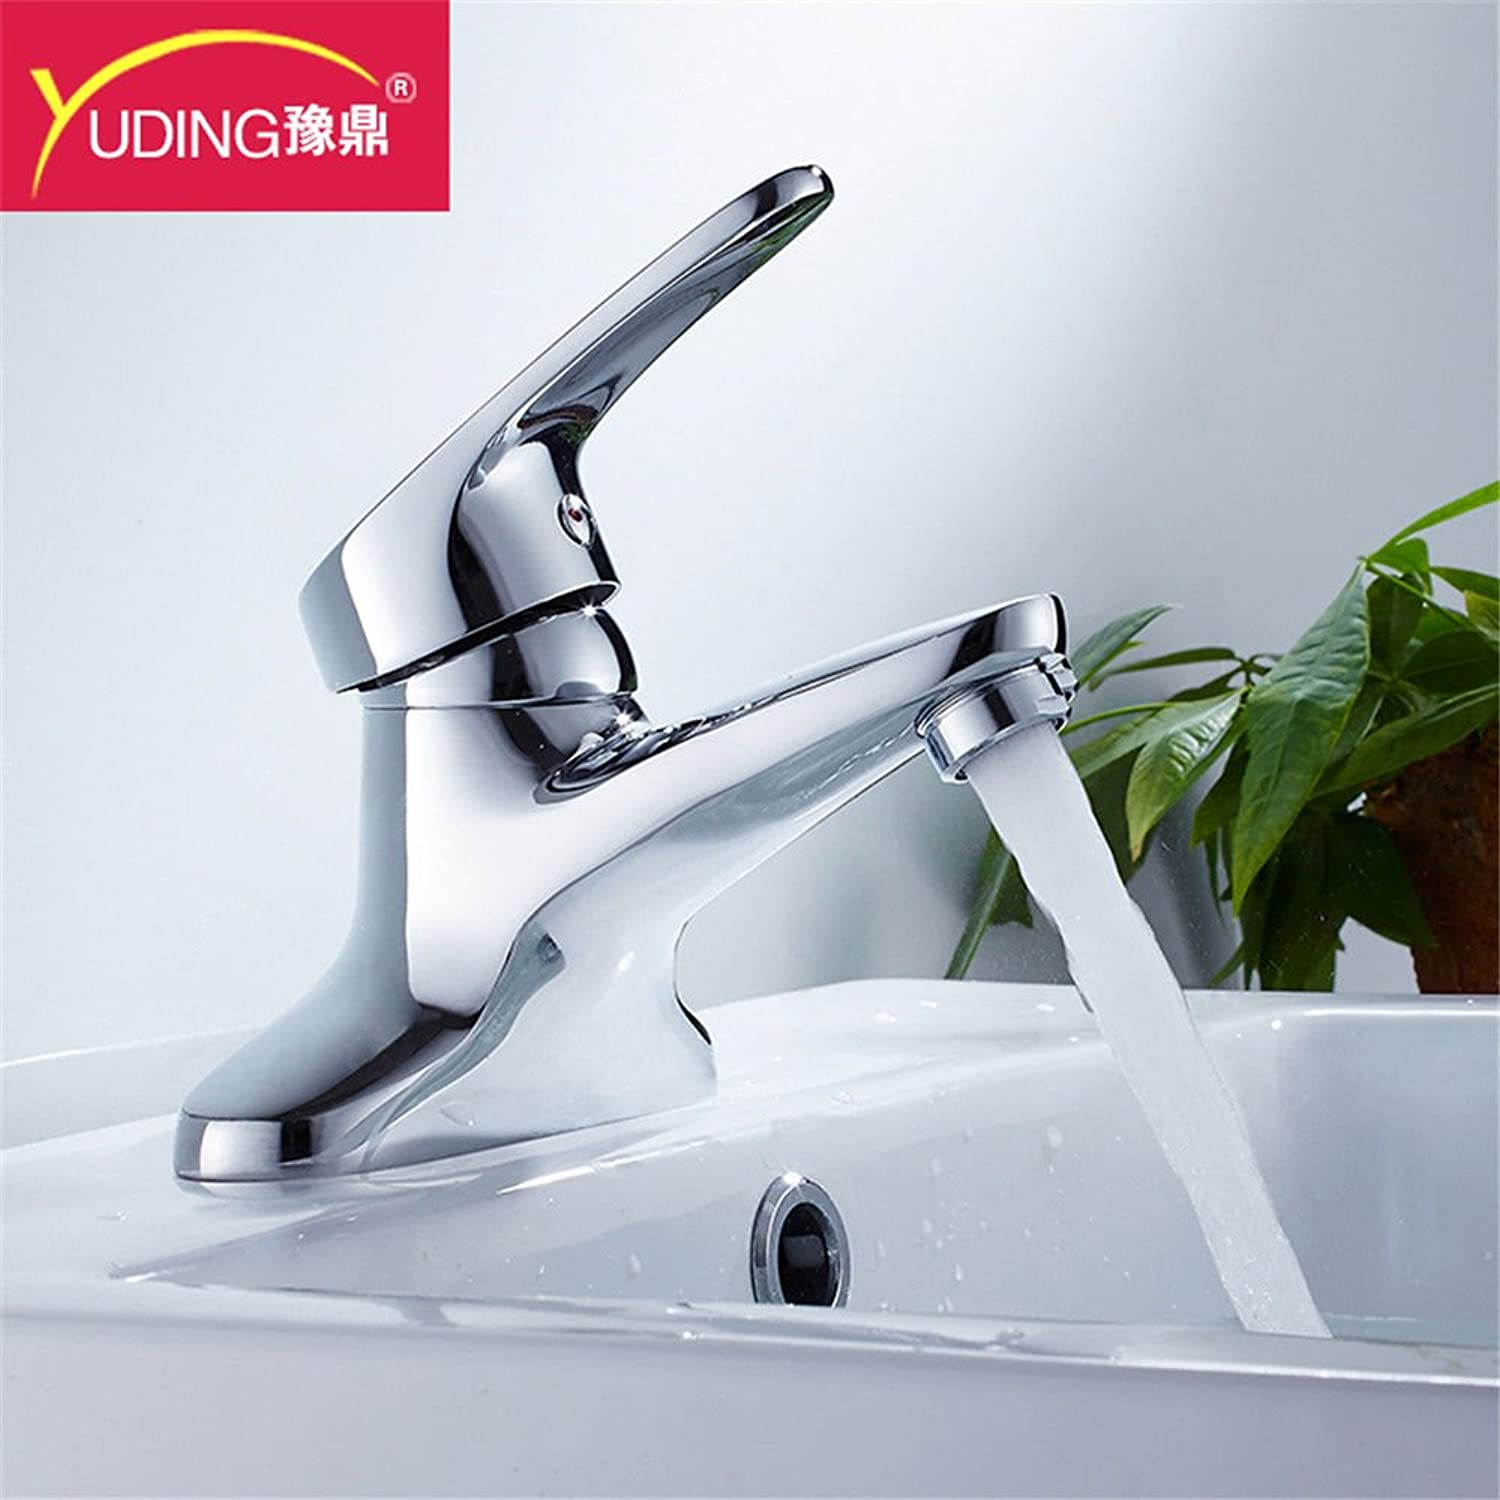 ETERNAL QUALITY Bathroom Sink Basin Tap Brass Mixer Tap Washroom Mixer Faucet 2 holes basin mixer full brass body and cold water faucet 2-hole 3-hole wash-hand basin basi